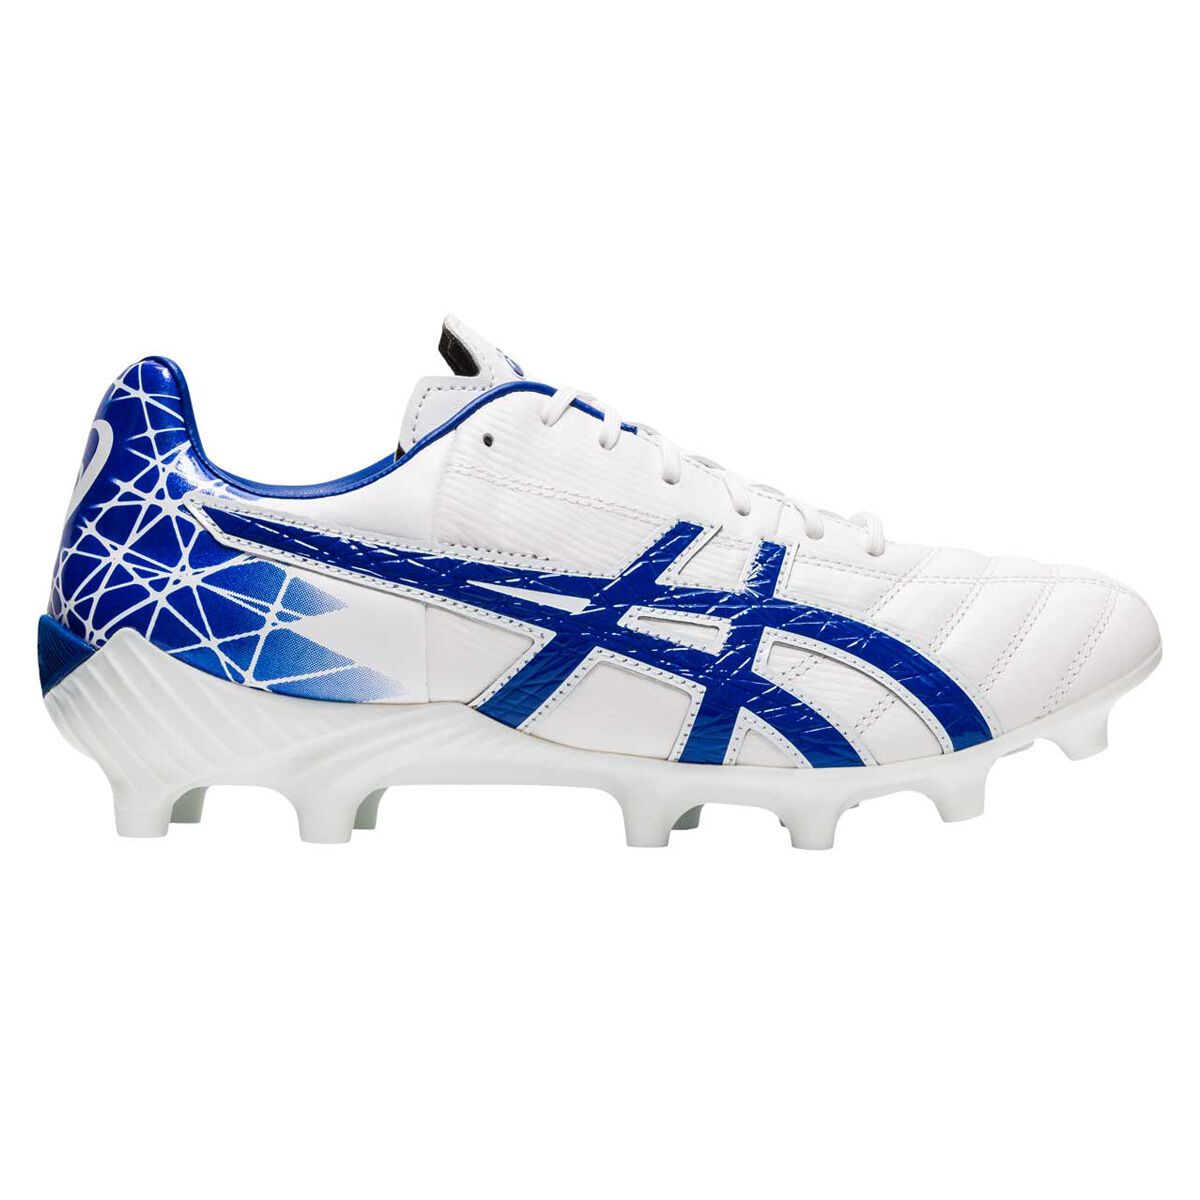 Asics Lethal Tigreor IT Football Boots